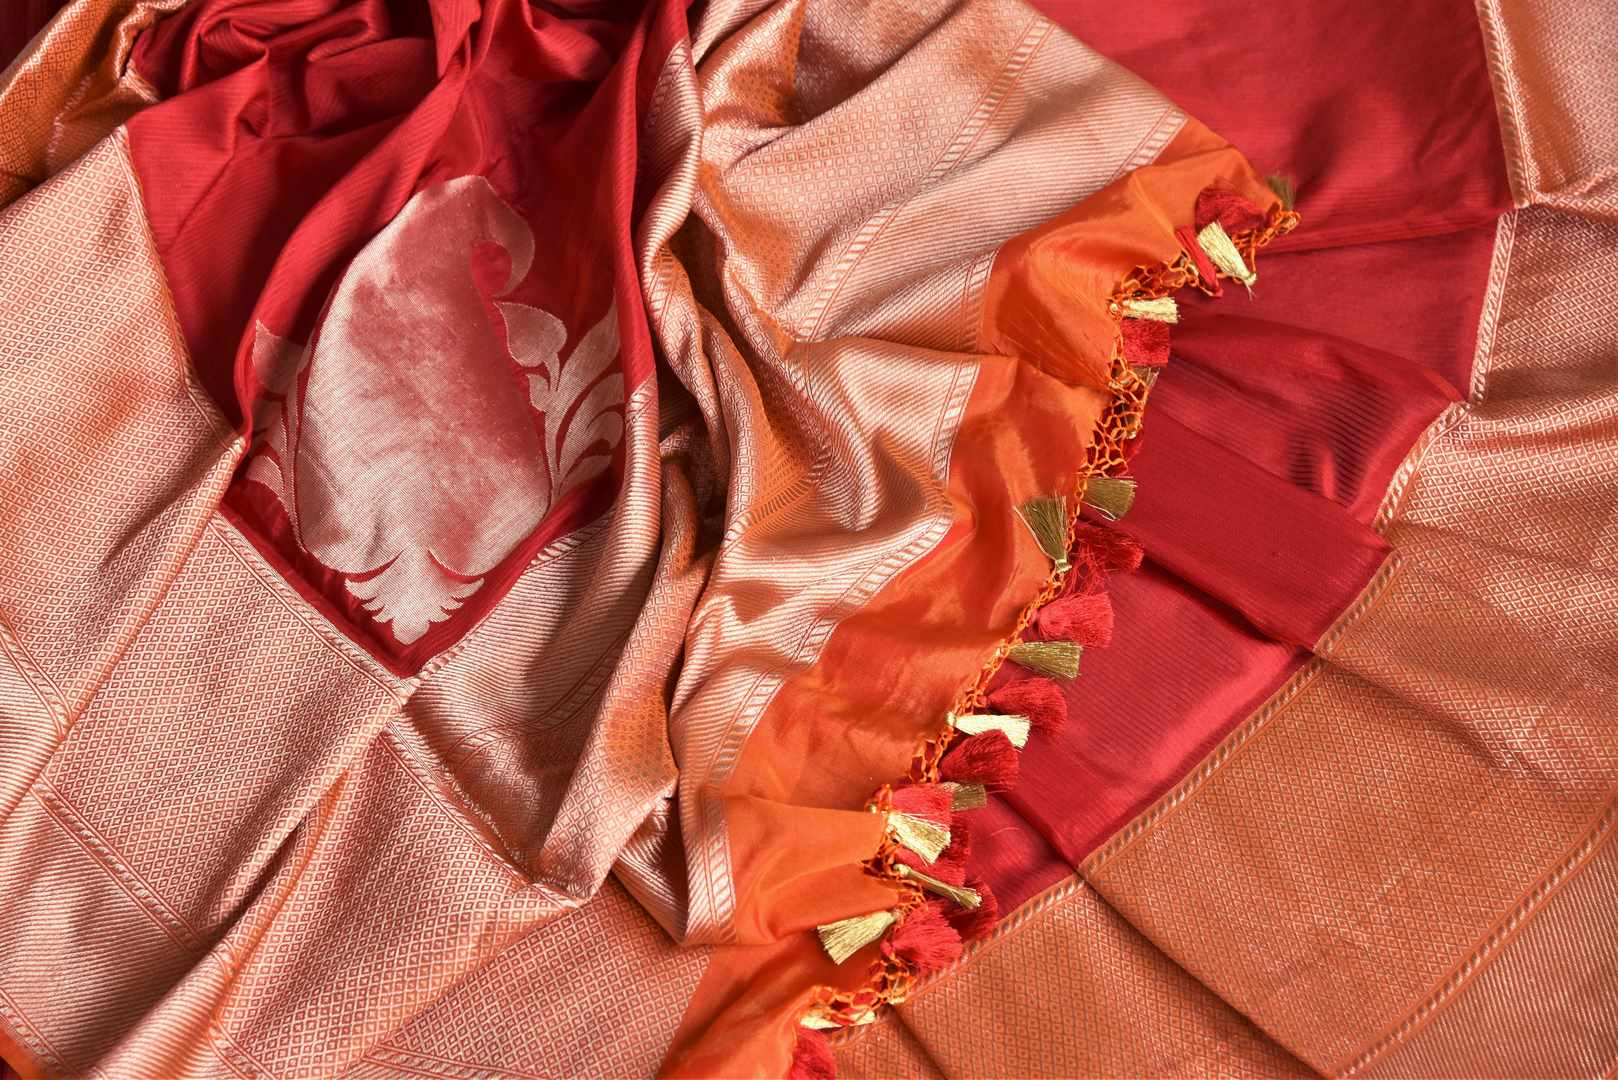 Drool-worthy designs scooped with stunning aesthetics in this graceful red banarsi silk saree. Beautifully laced with gold zari on the rich pallu and border, complemented with a designer red and gold blouse. Shop handloom sarees, designer silk saris, embroidered sarees online or visit Pure Elegance store, USA. -details